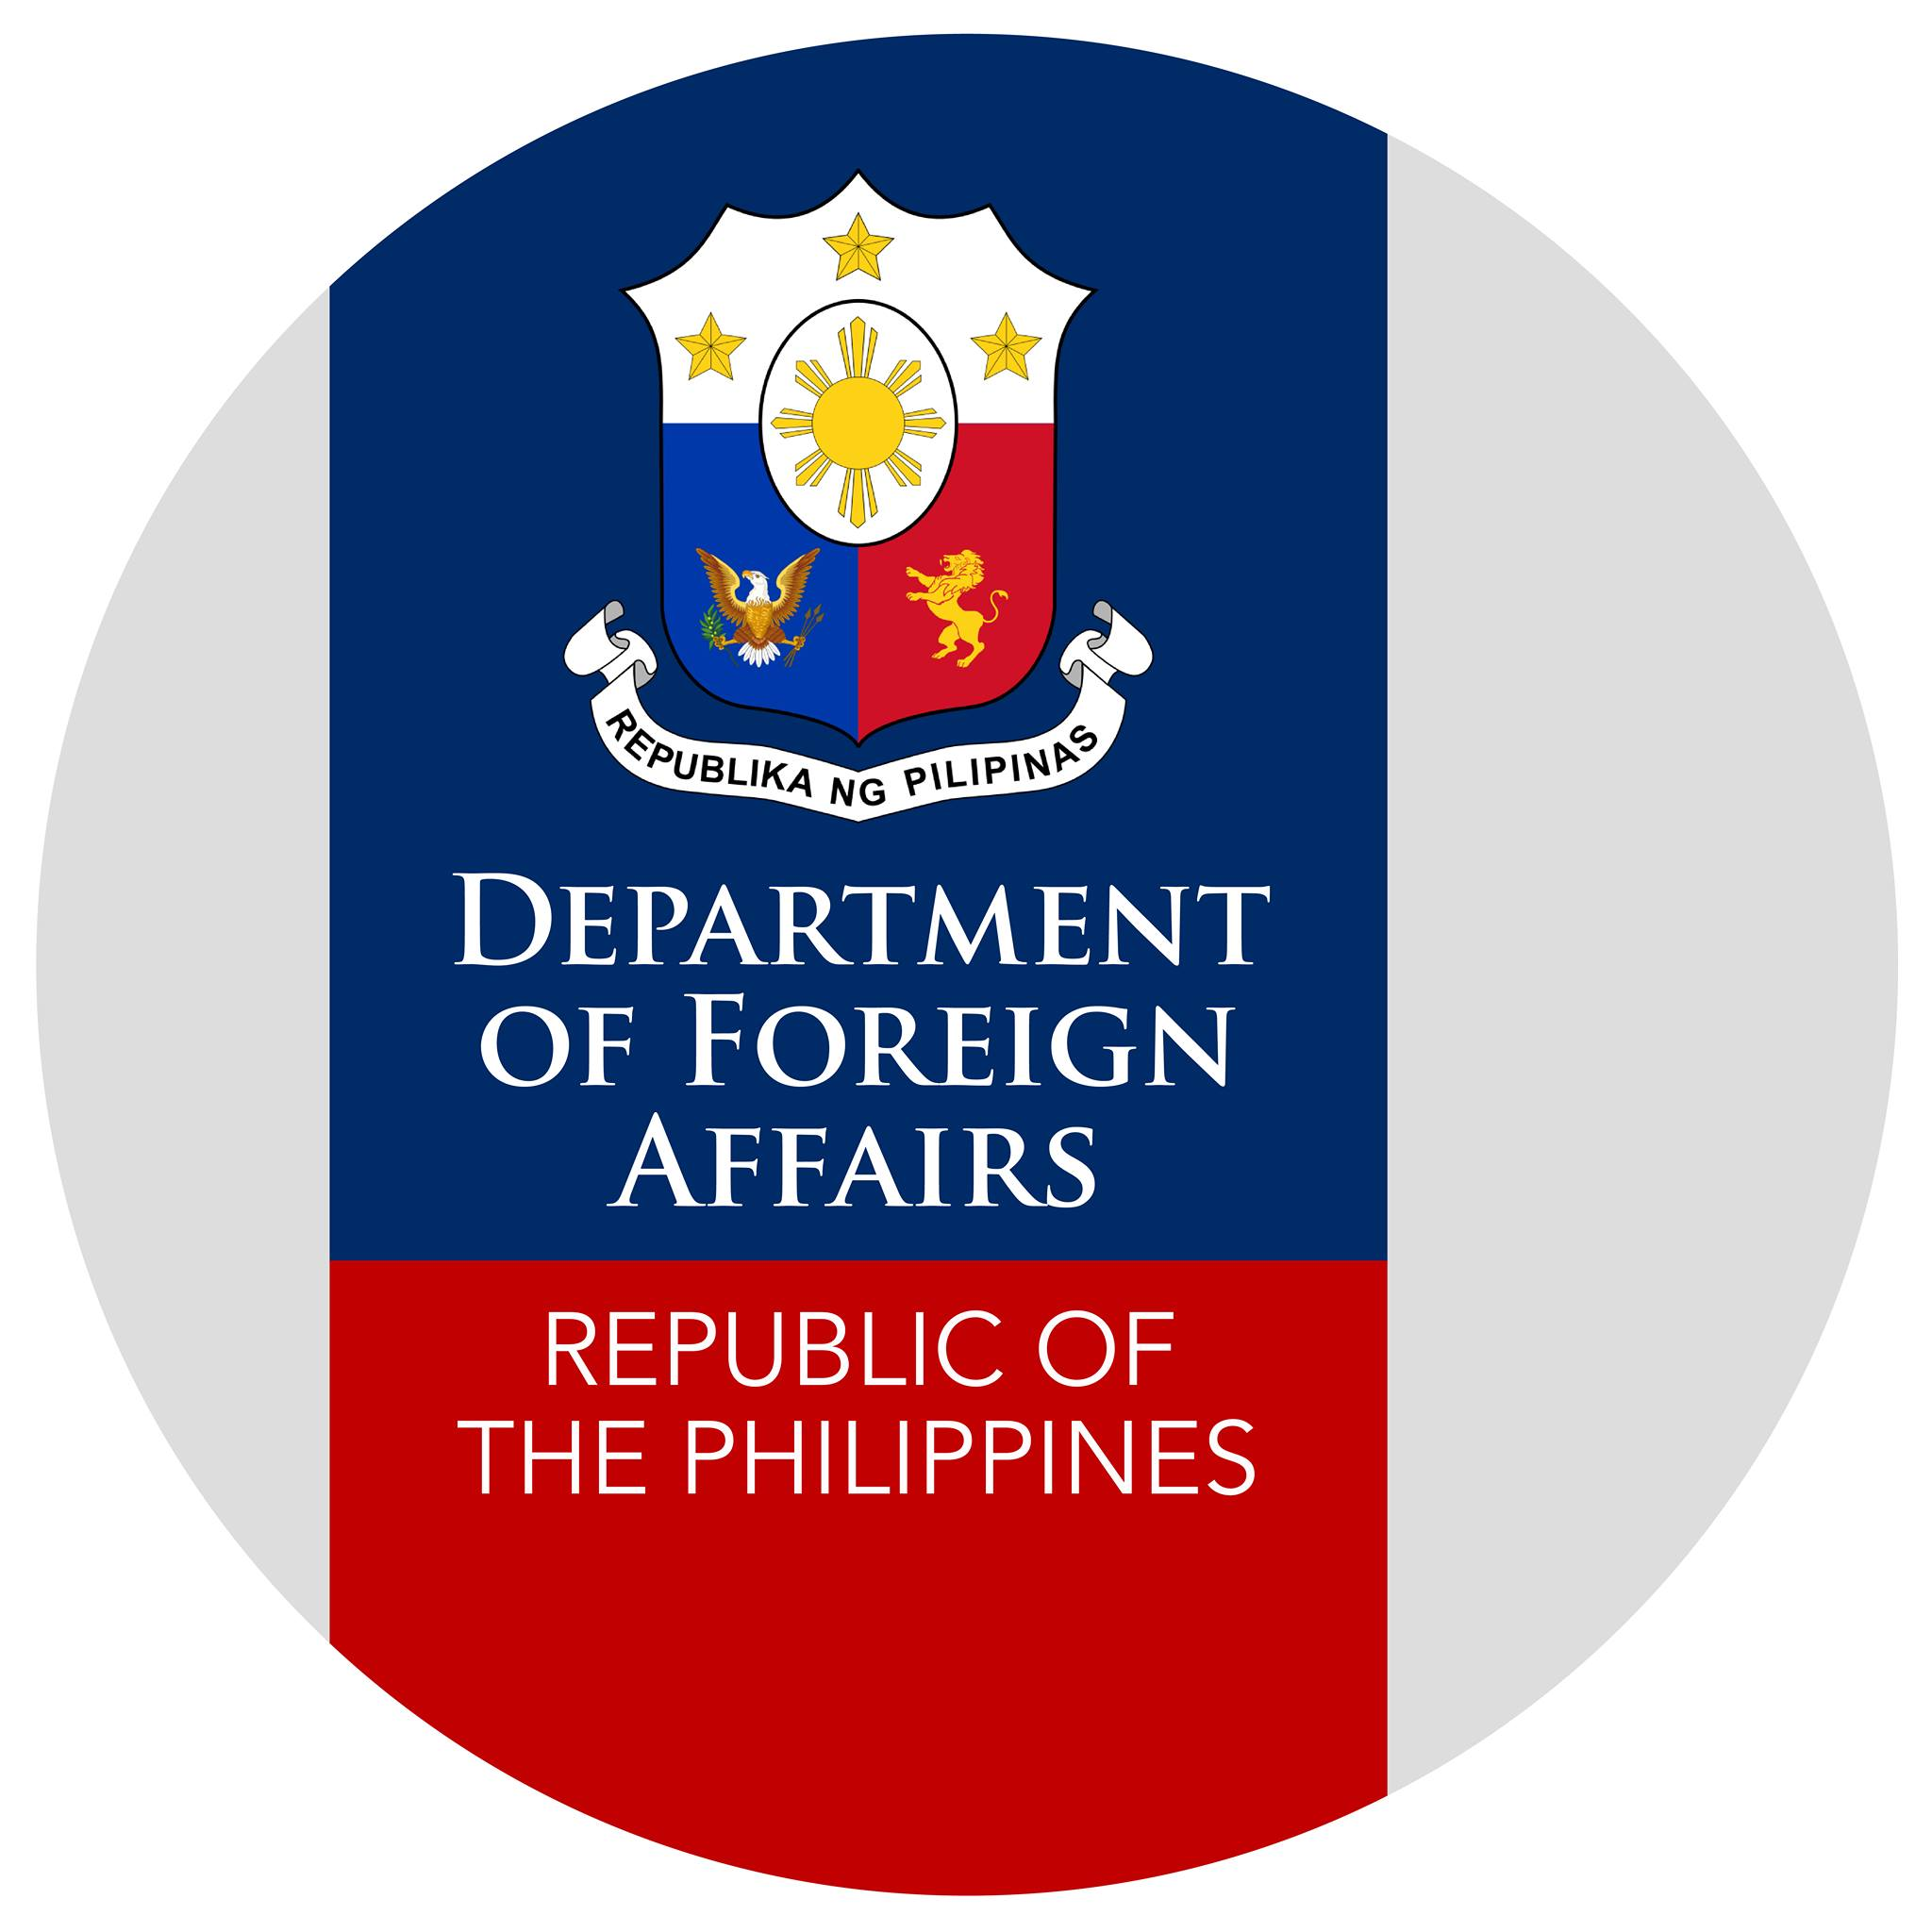 DFA opens first temporary off-site passport service unit in the Visayas